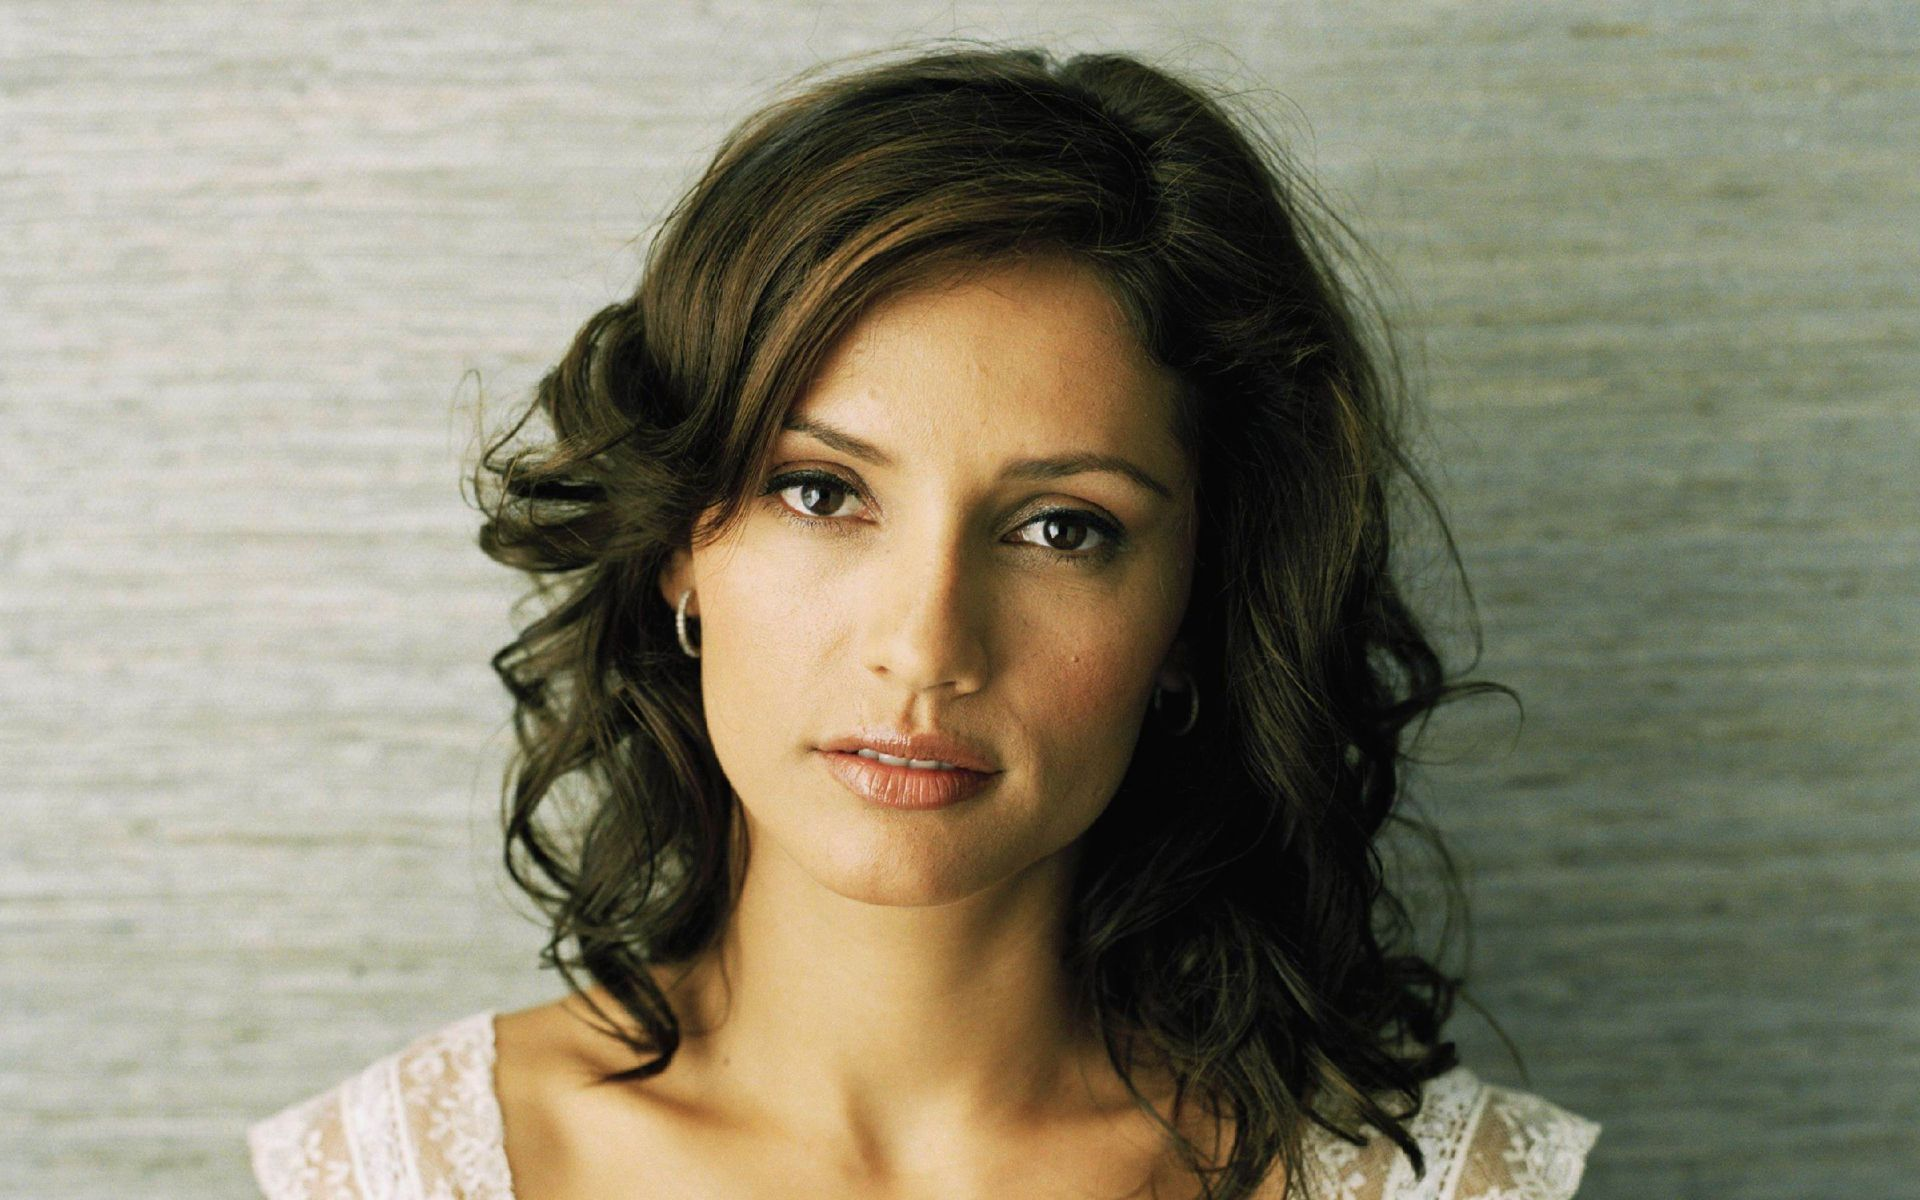 leonor-varela-image.jpg (1920×1200) | Attractive Hispanic ...